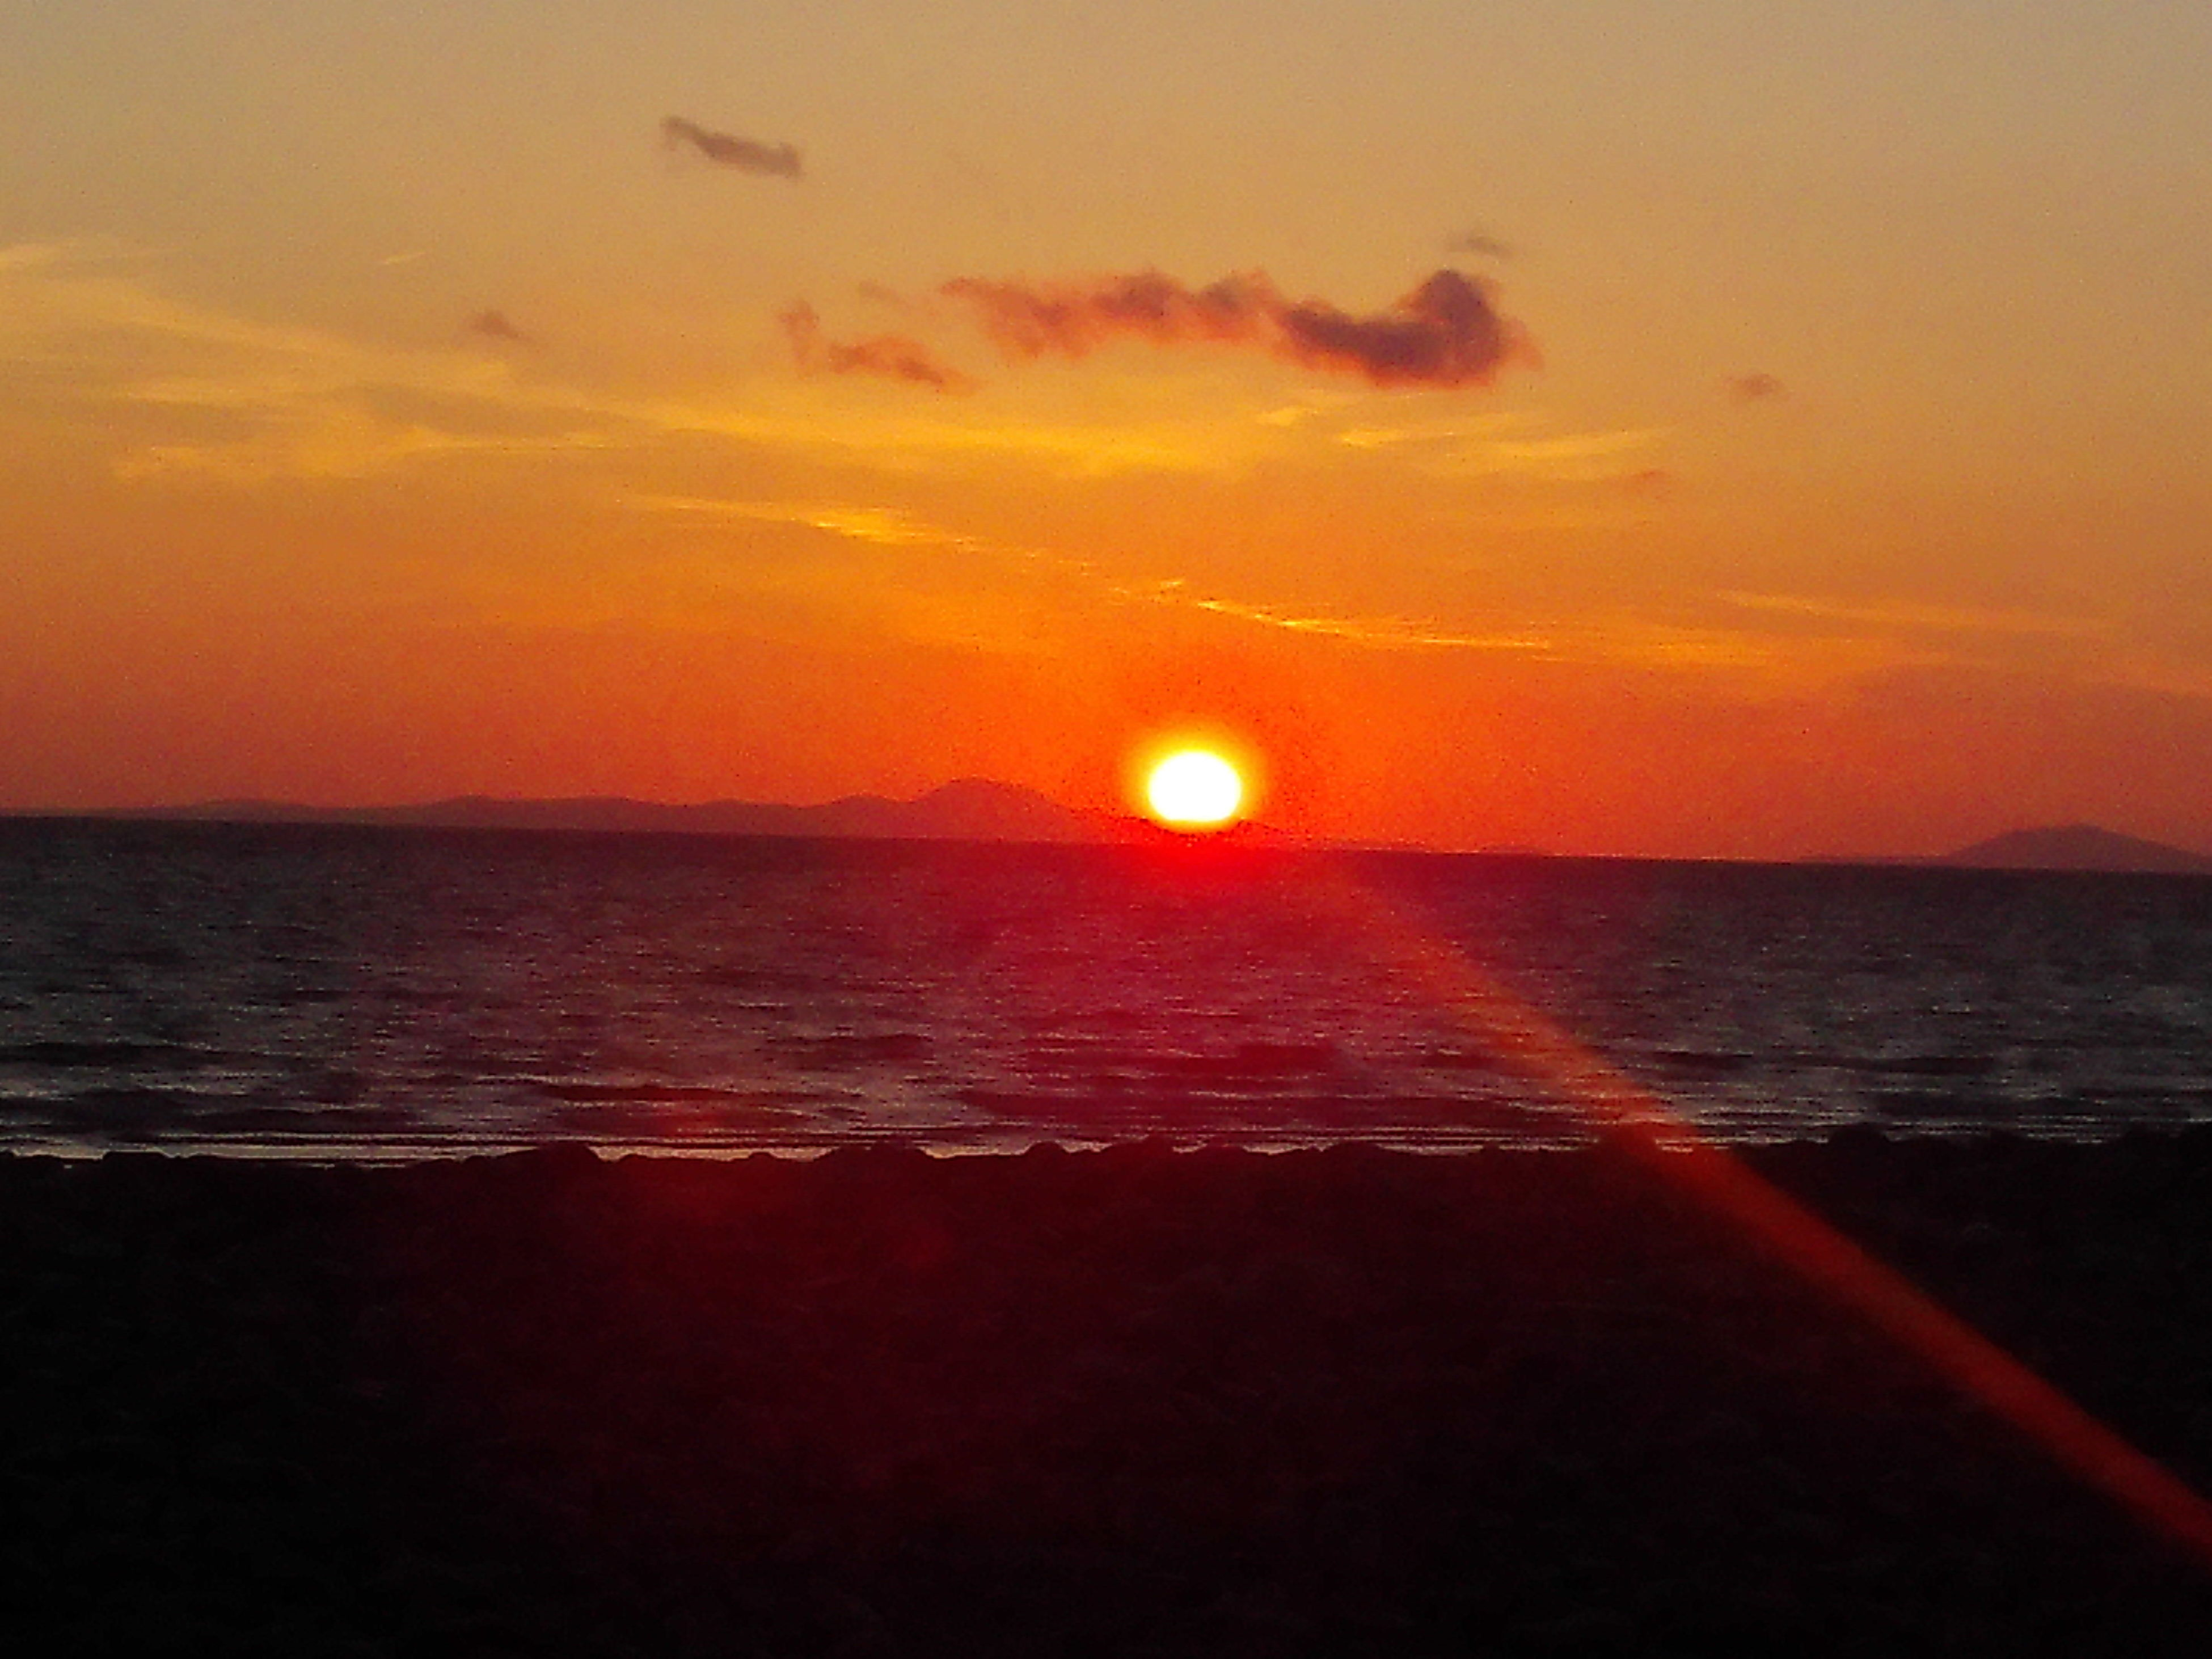 sunset, sea, sun, horizon over water, orange color, water, scenics, tranquil scene, beauty in nature, tranquility, sky, idyllic, nature, beach, reflection, sunlight, shore, silhouette, remote, outdoors